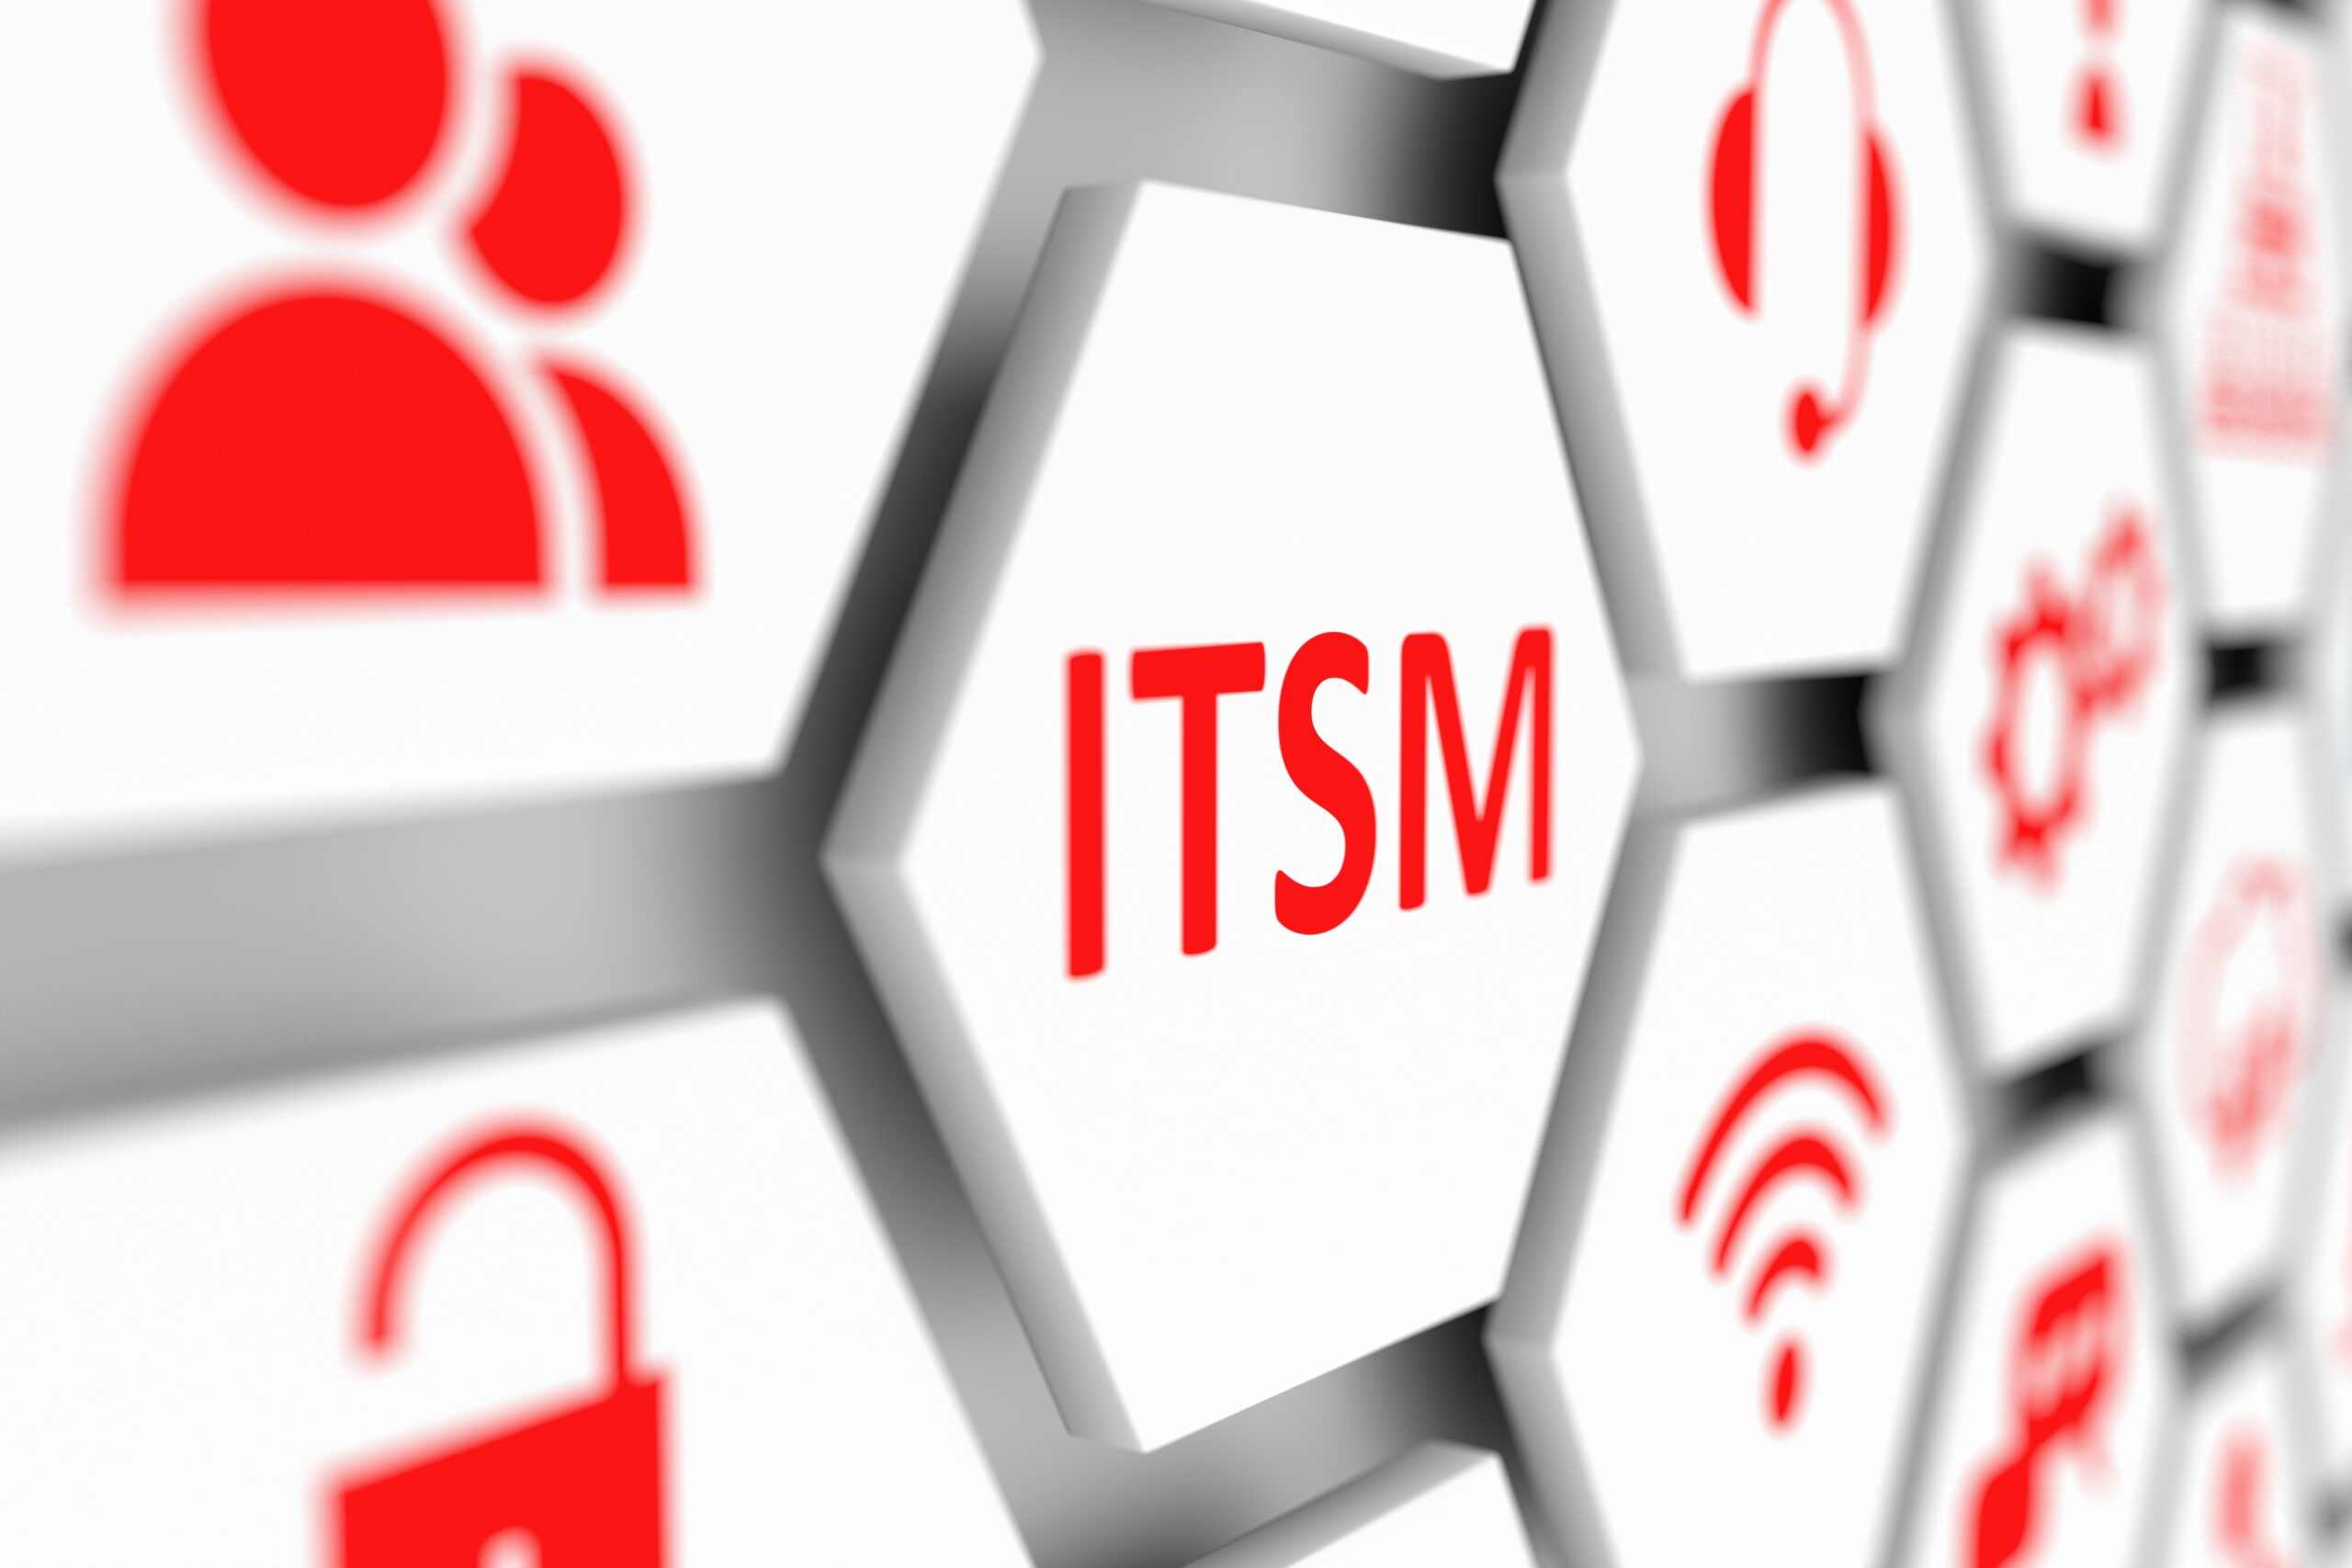 ITSM Program and Project Management